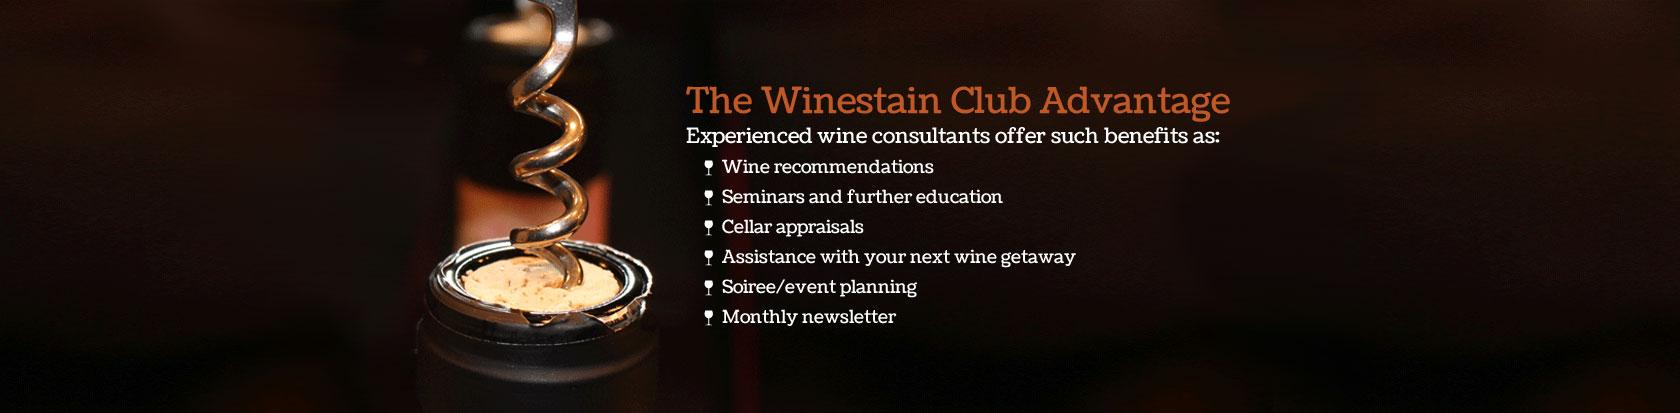 The Winestain Club Advantage